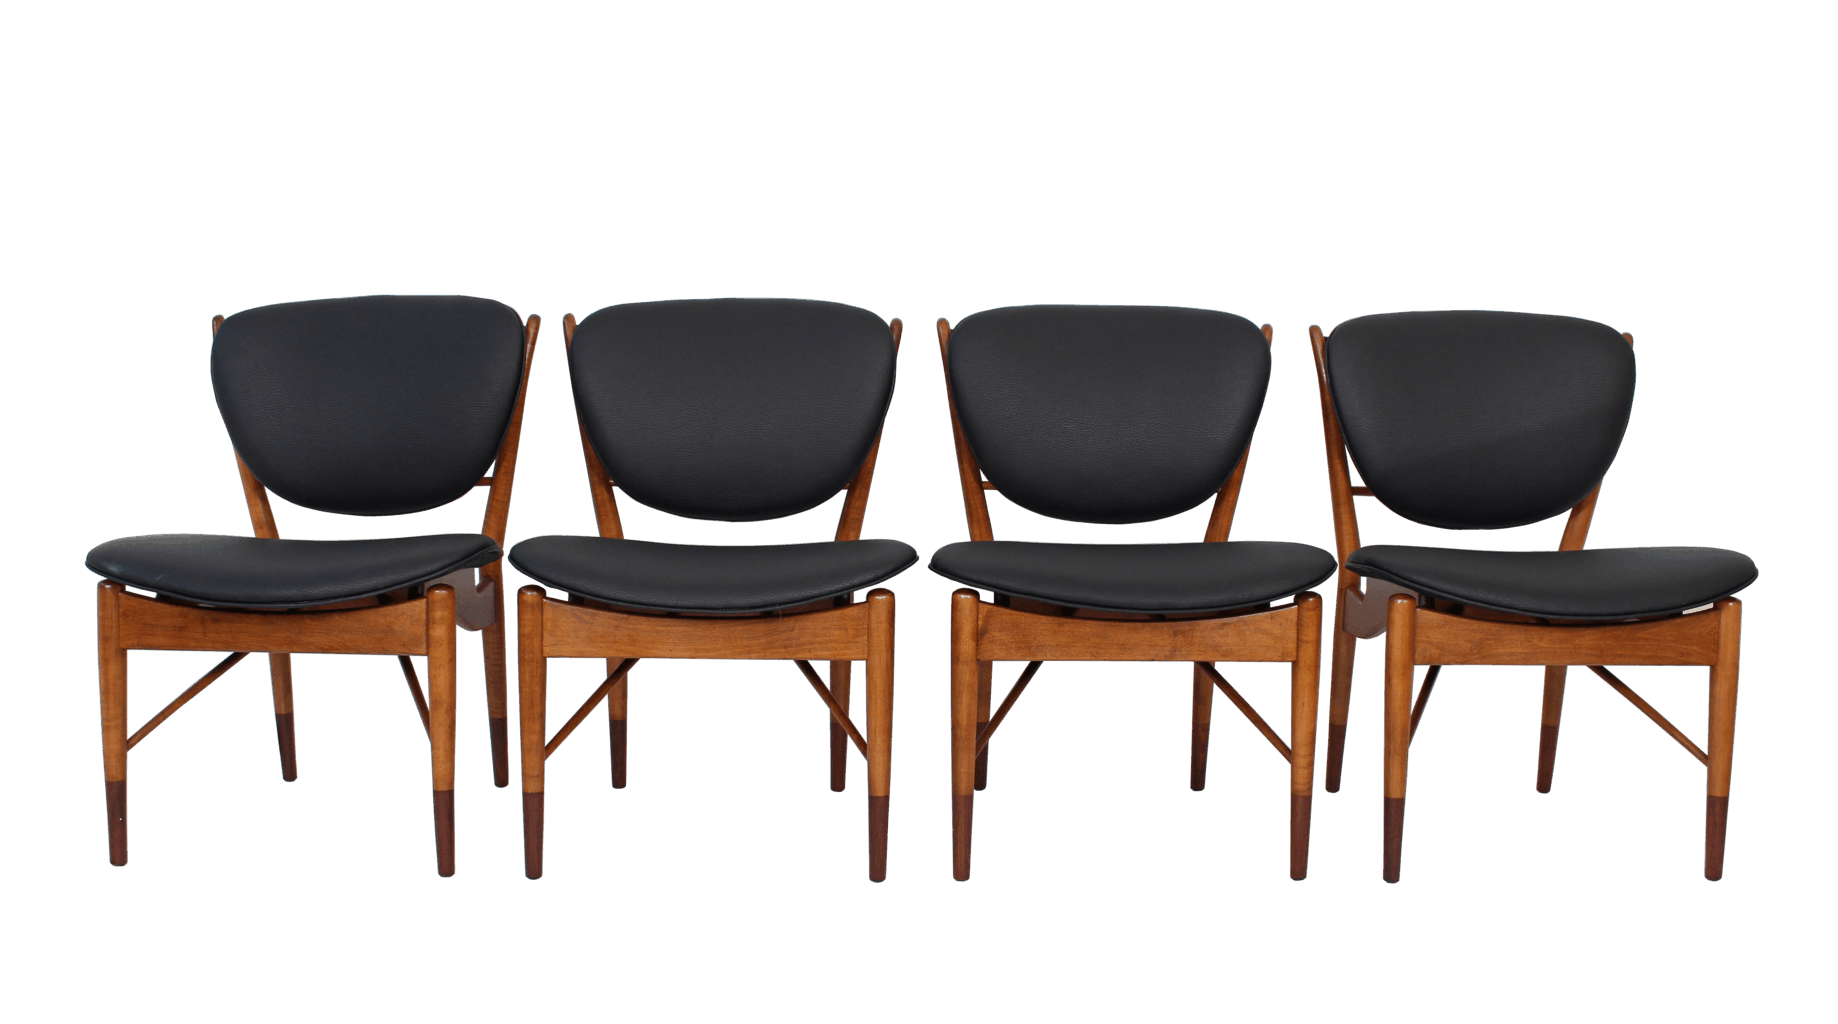 Four Model 51 Dining Chairs by Finn Juhl for Baker